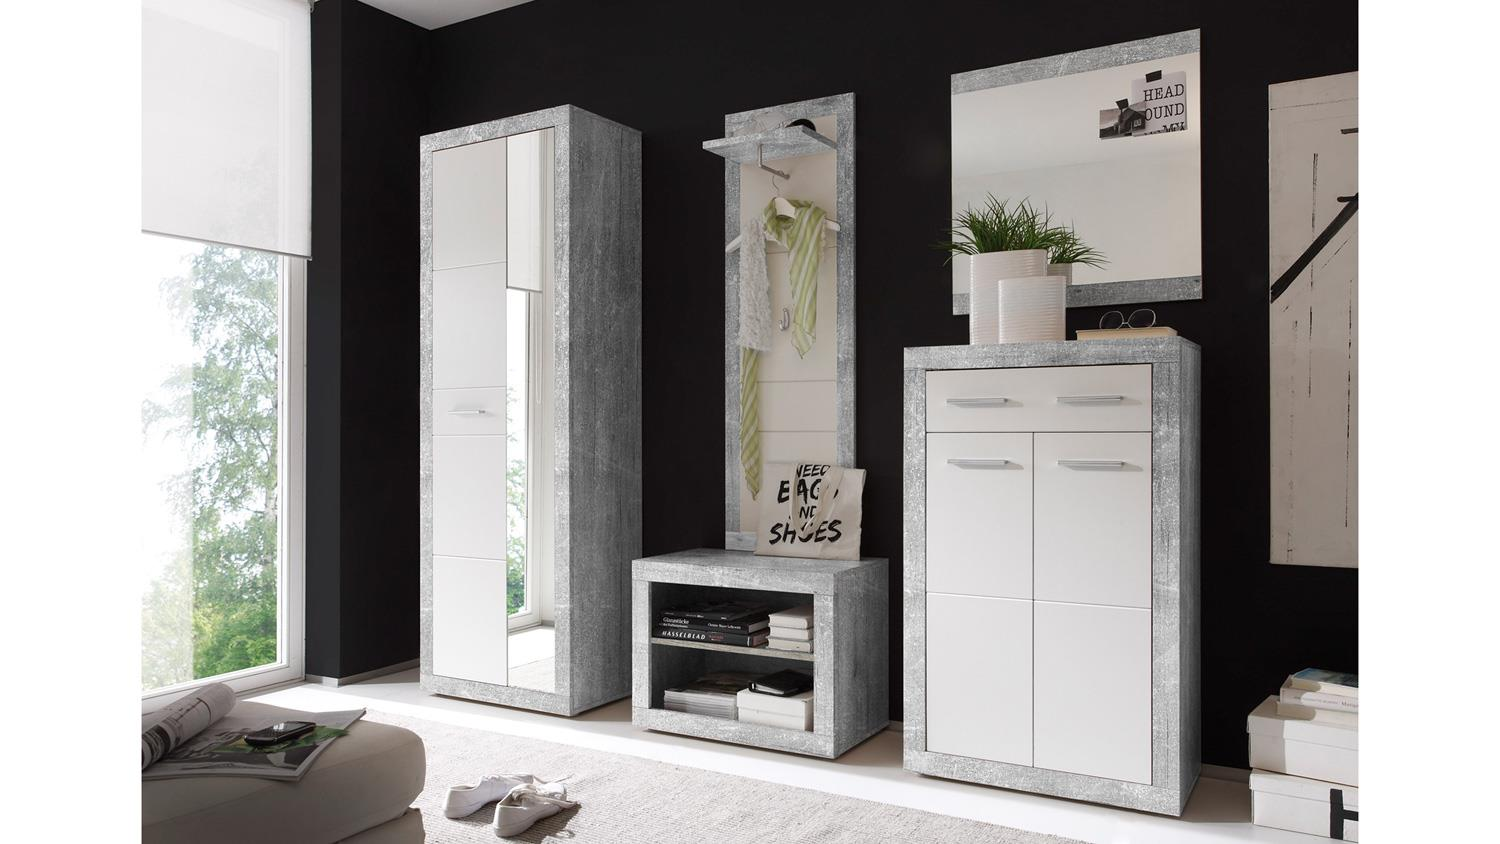 garderobe stone in beton optik grau und wei glanz inkl spiegel 5 tlg. Black Bedroom Furniture Sets. Home Design Ideas